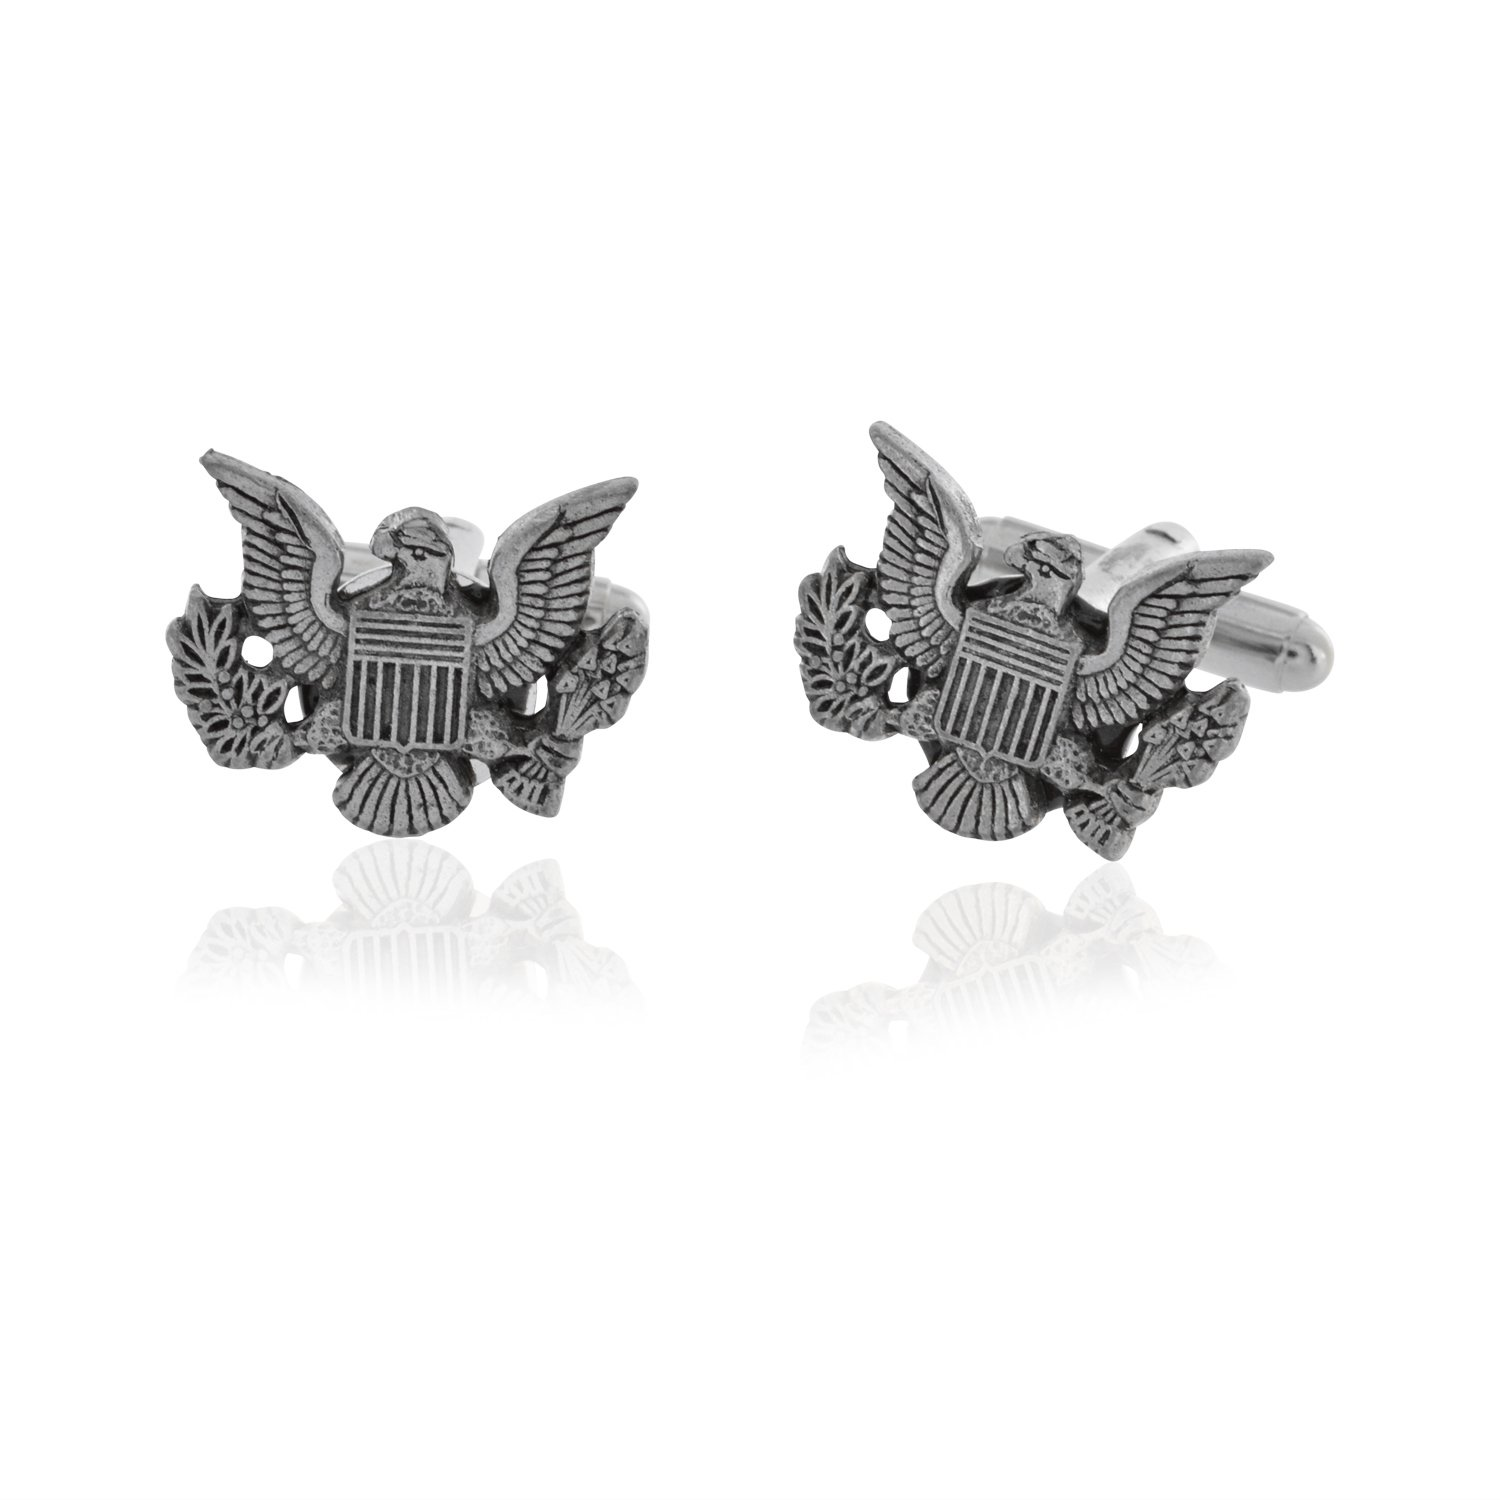 Pewter United States US Coat of Arms Cufflinks